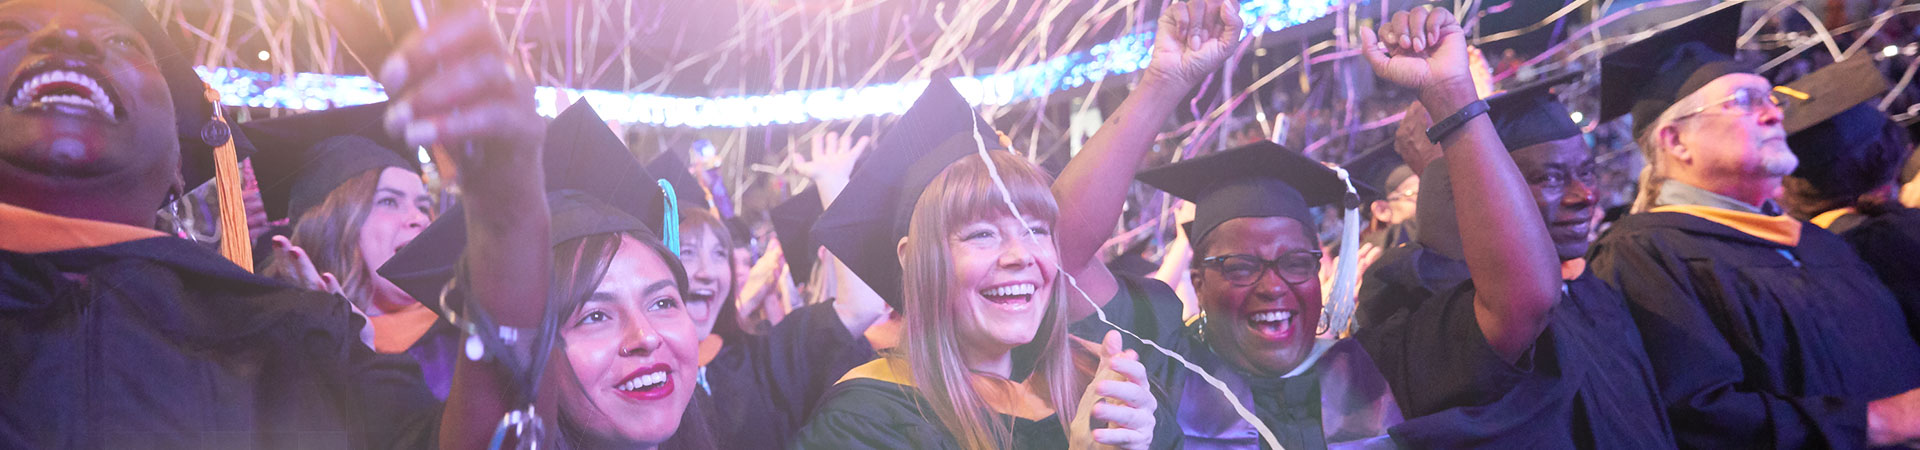 GCU students celebrating at commencement ceremony